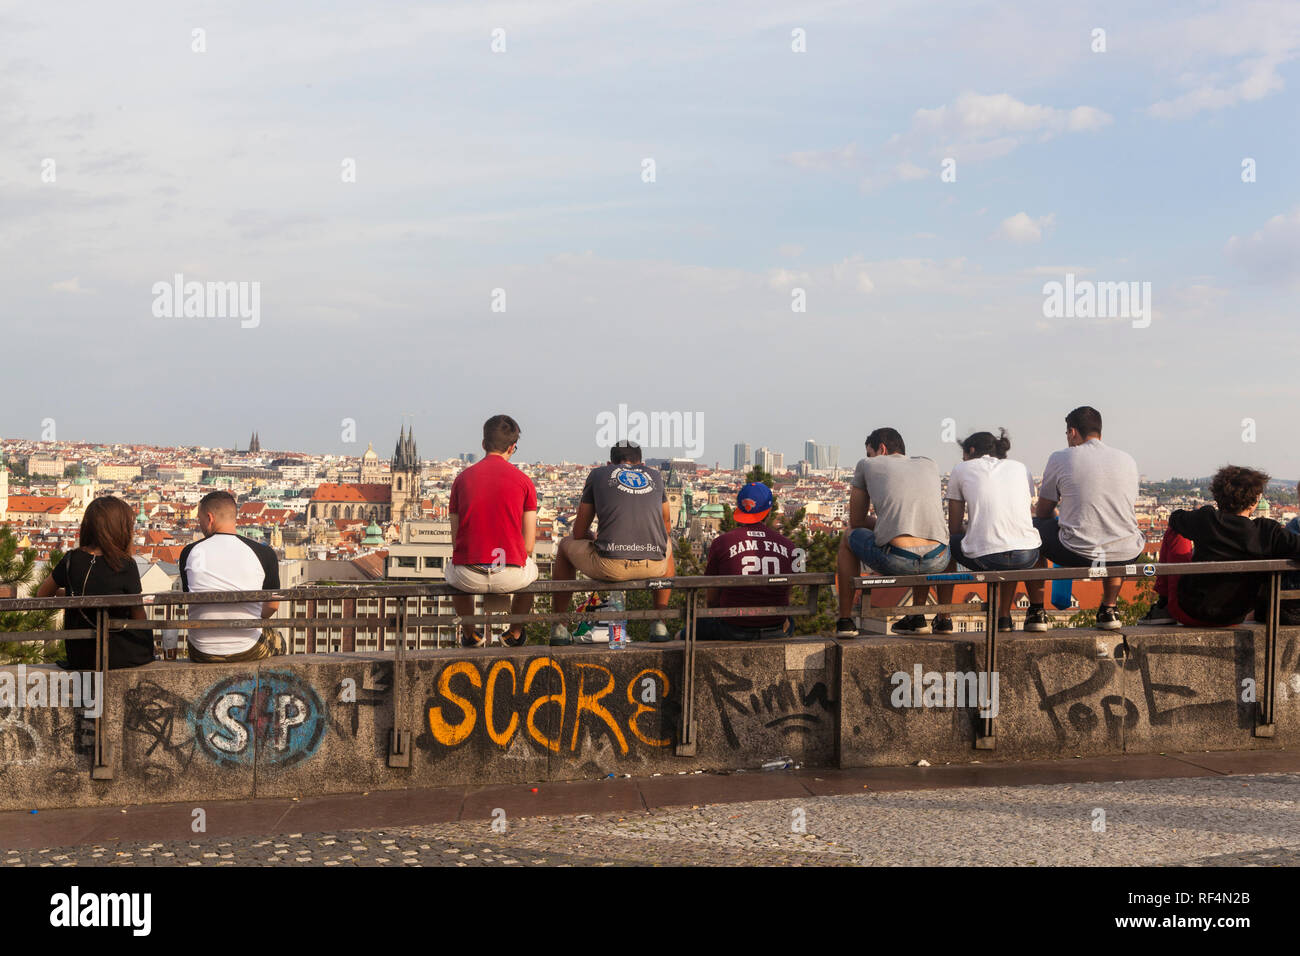 Prague, Czech Republic - July 17 2018: People sitting on a fence in Letna Park - Stock Image